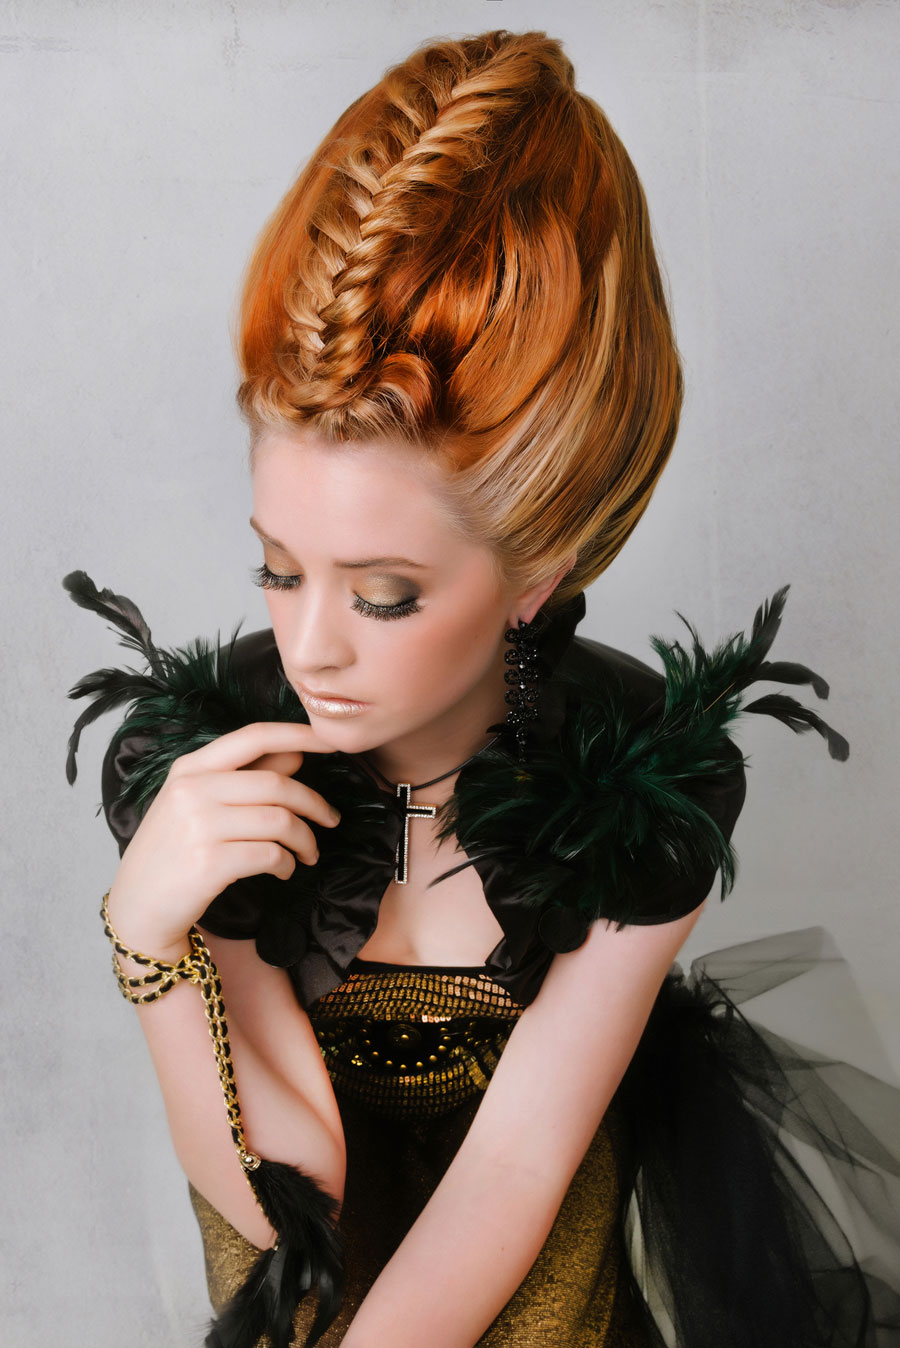 Peoples choice awards Northland Hair Comany, photographer Jess Burges